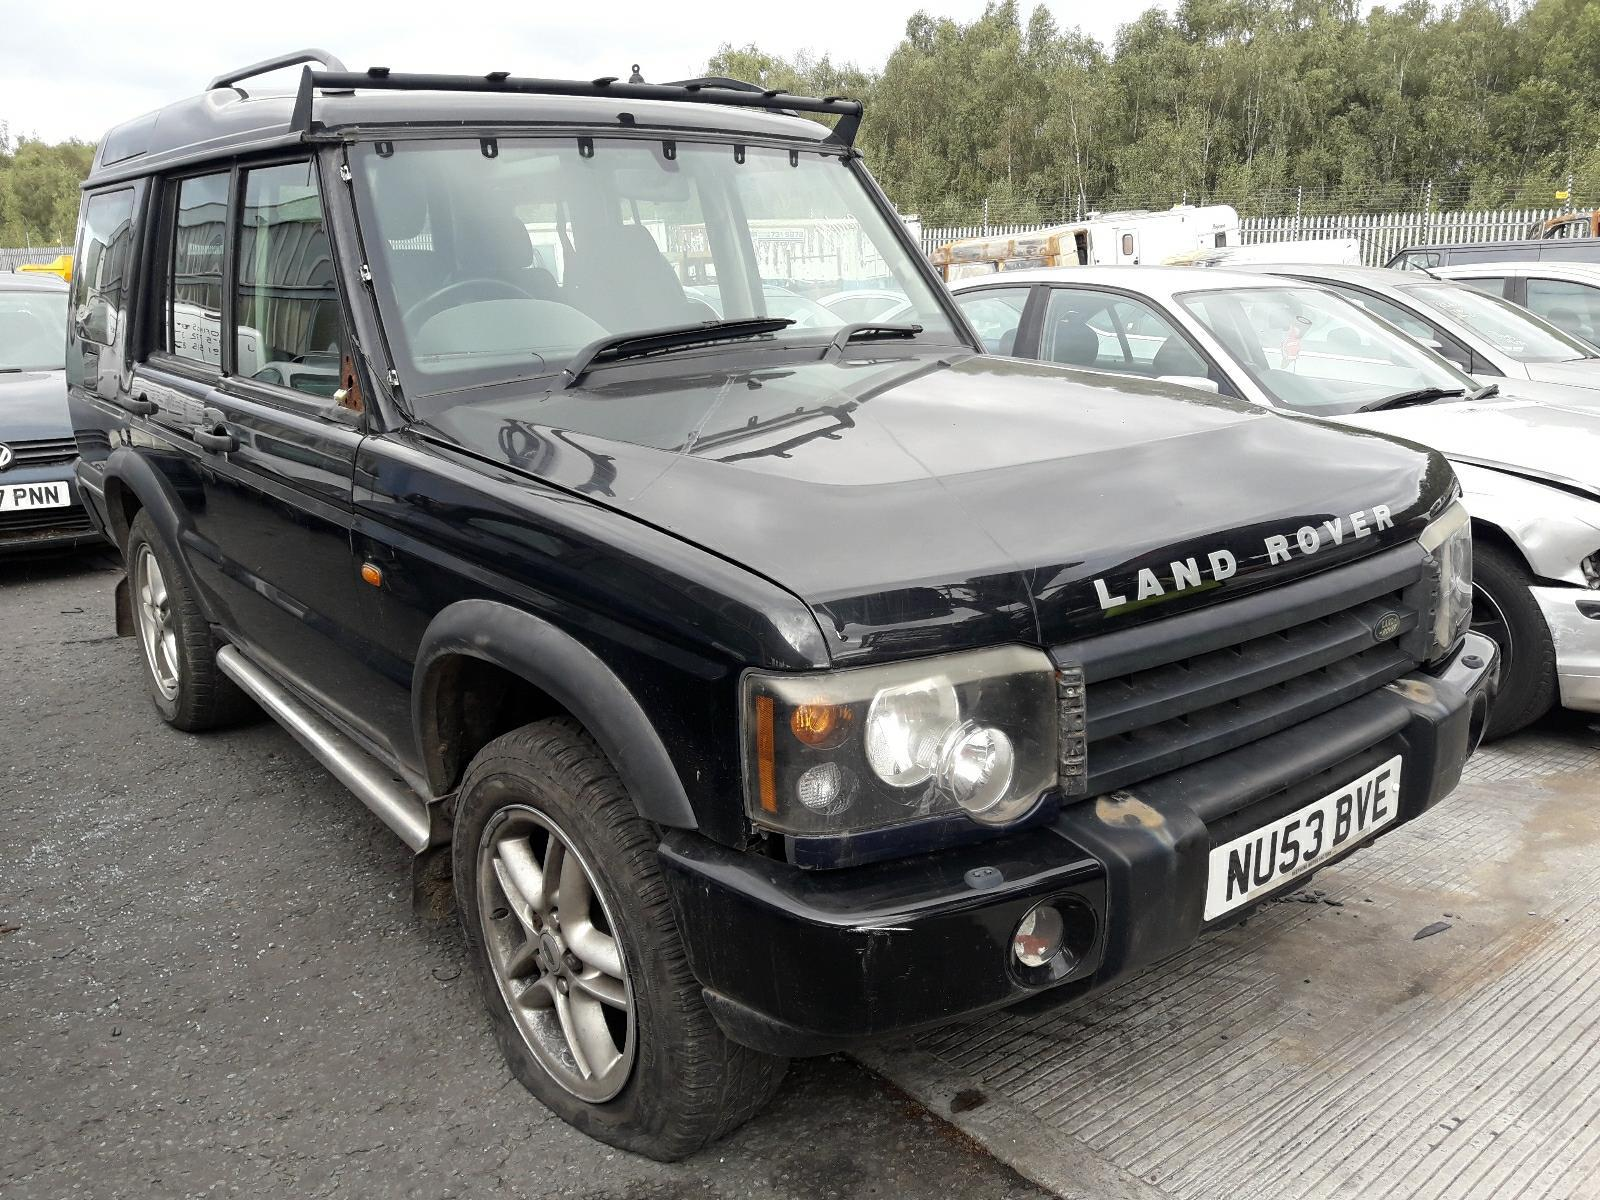 2003 LAND ROVER DISCOVERY TD5 GS 7STR 2495cc TURBO 5 DOOR ESTATE